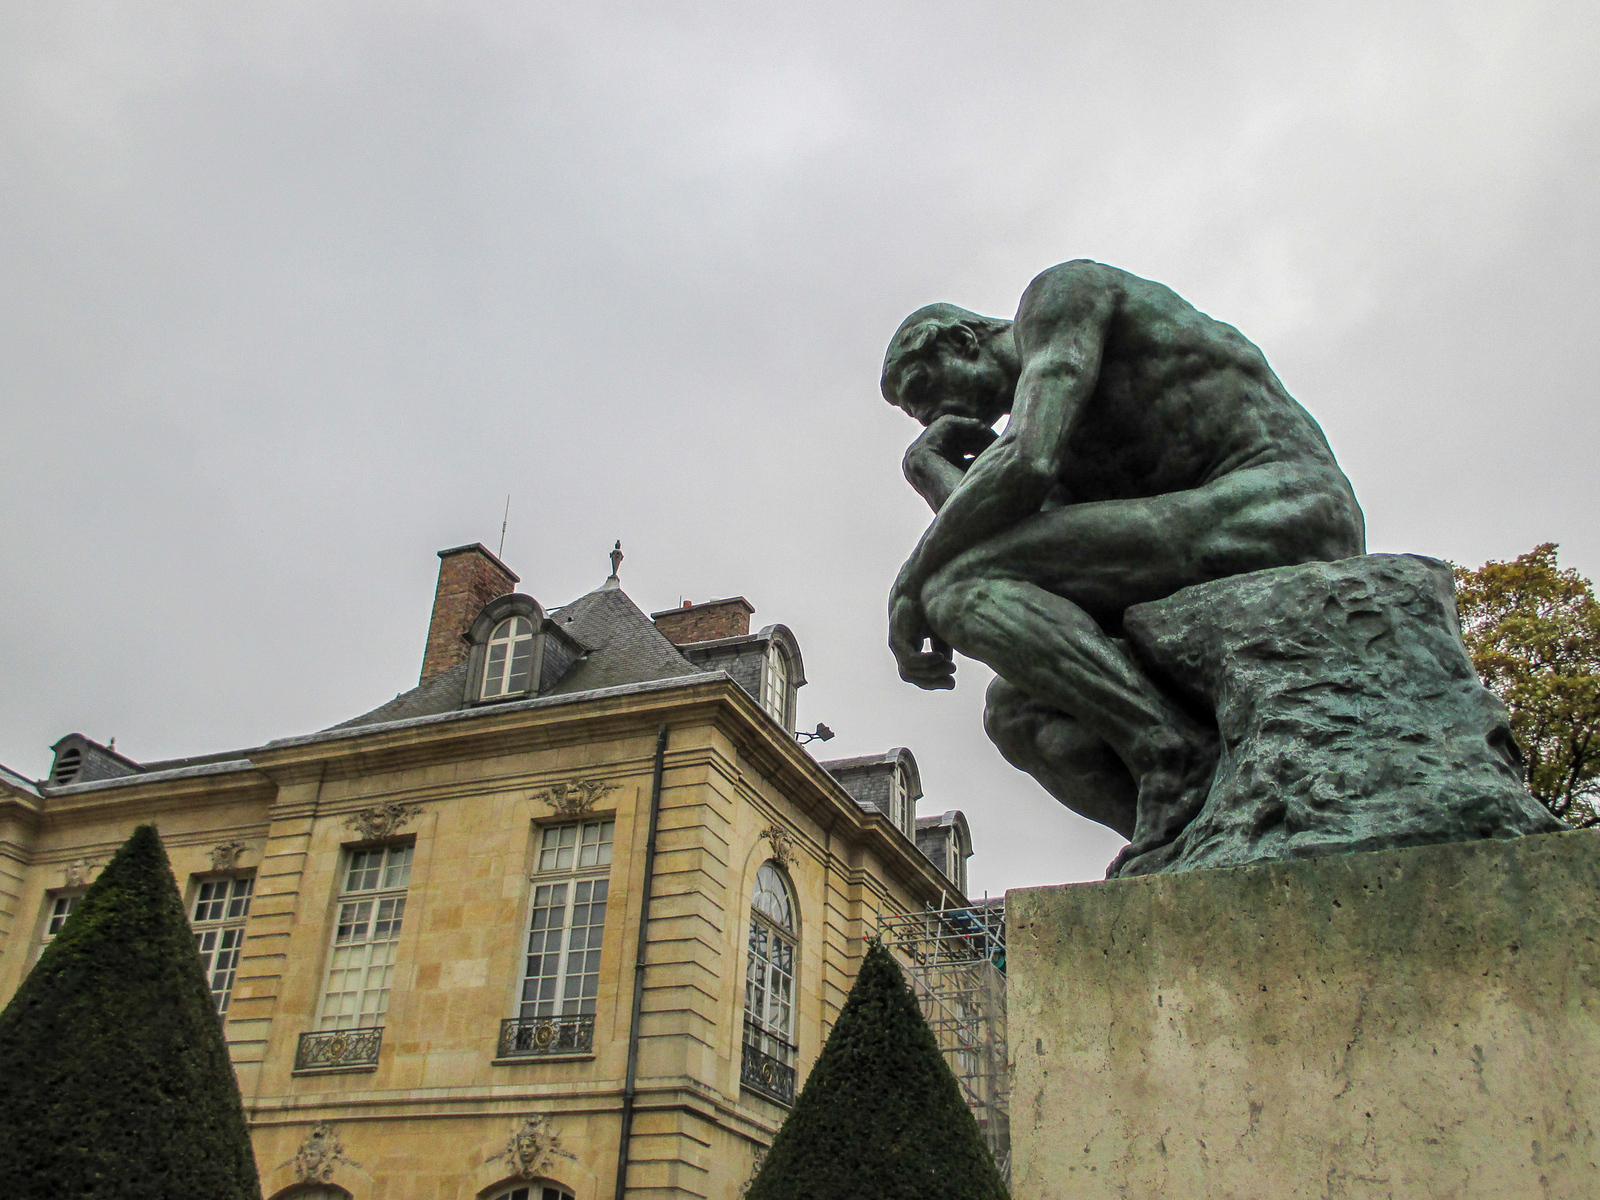 paris first time visit requires a lot of thinking